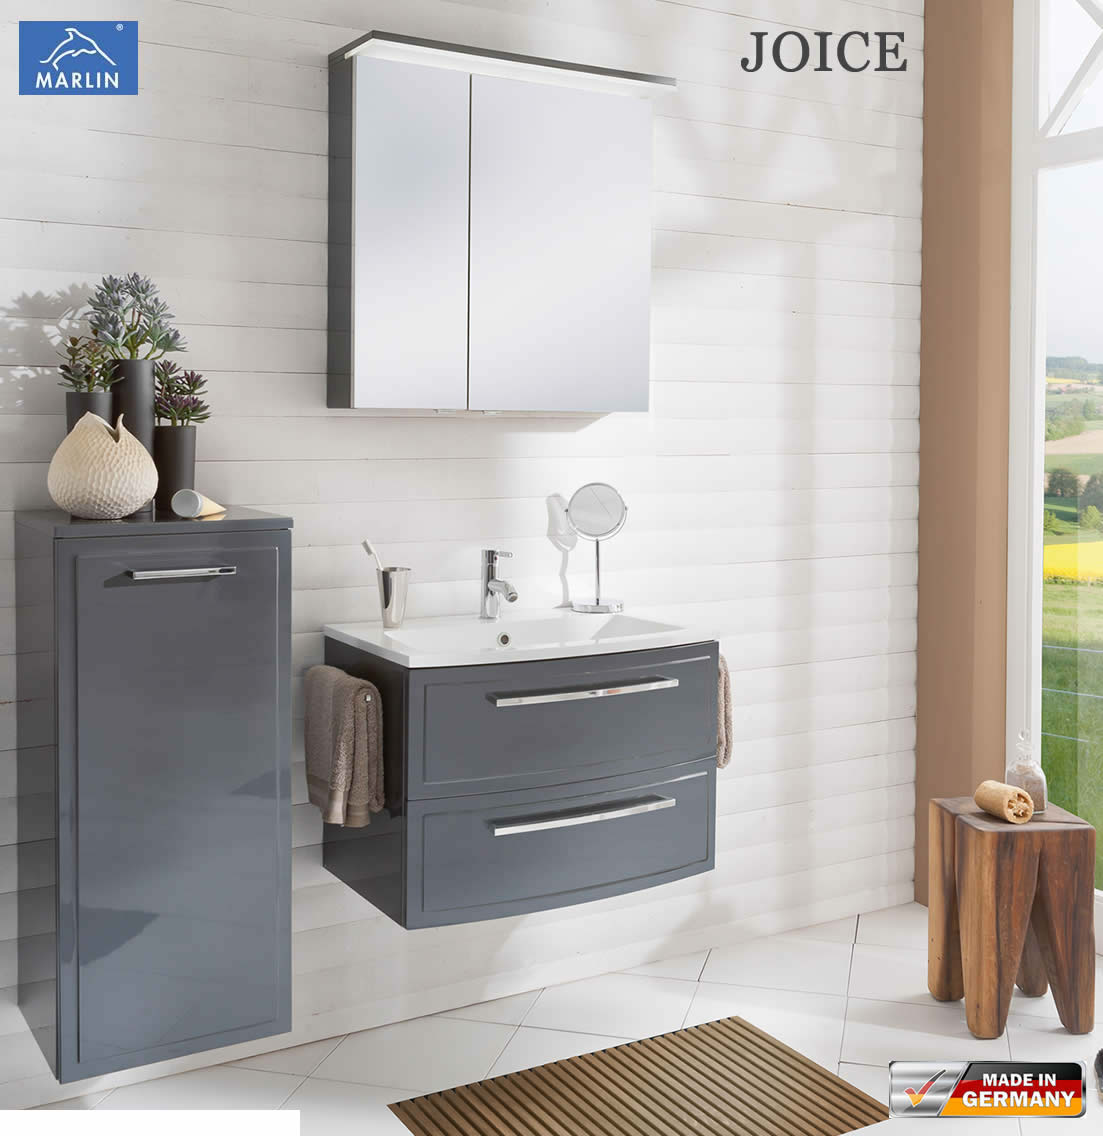 marlin joice badm bel set 70 cm mit led spiegelschrank rahmenoptik v1 1 impuls home. Black Bedroom Furniture Sets. Home Design Ideas